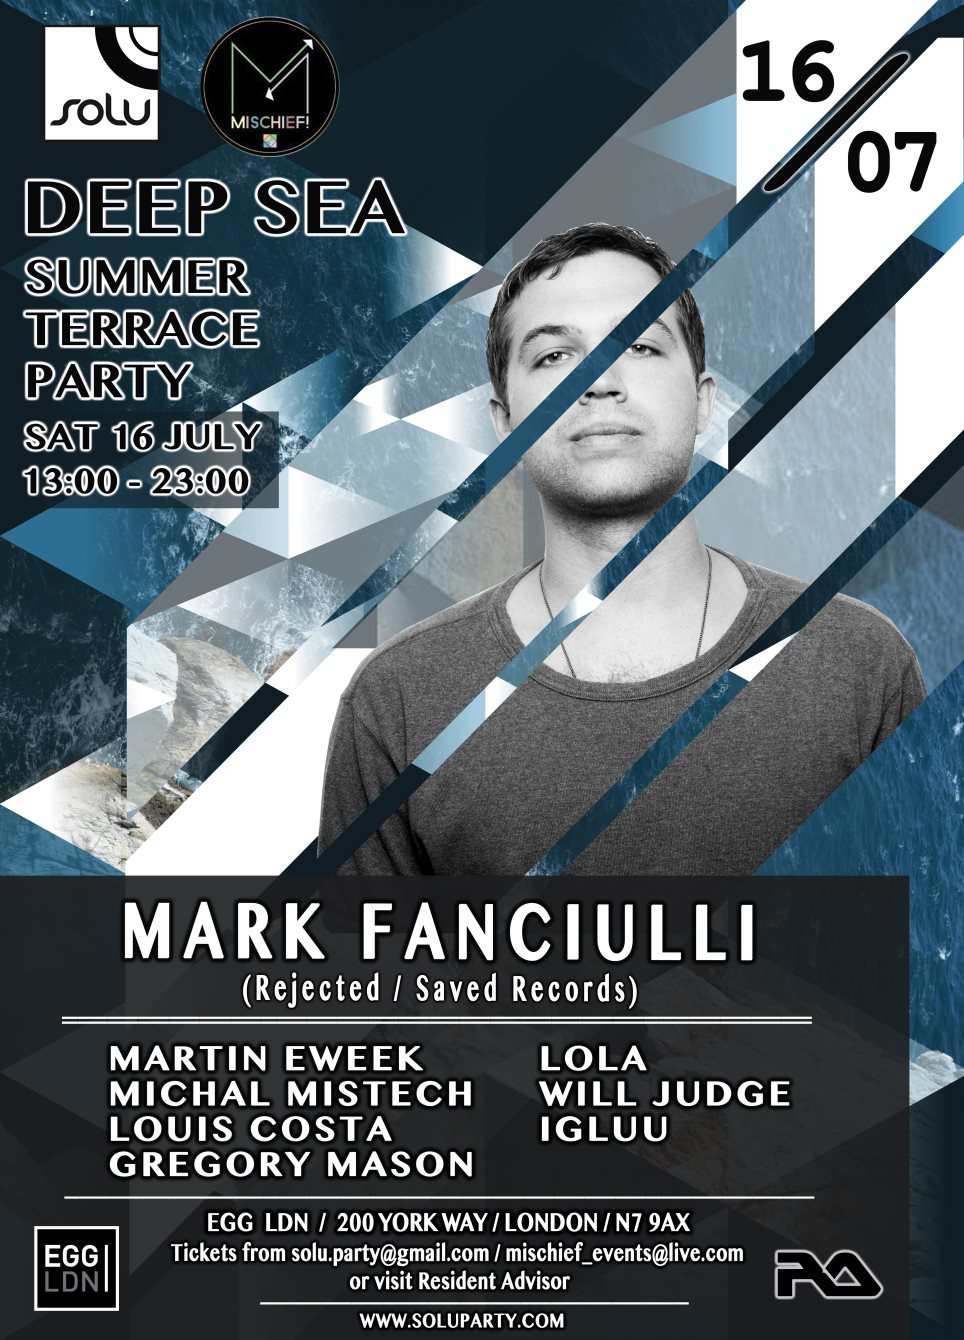 Deep Sea Summer Terrace Party with Mark Fanciulli - Flyer front